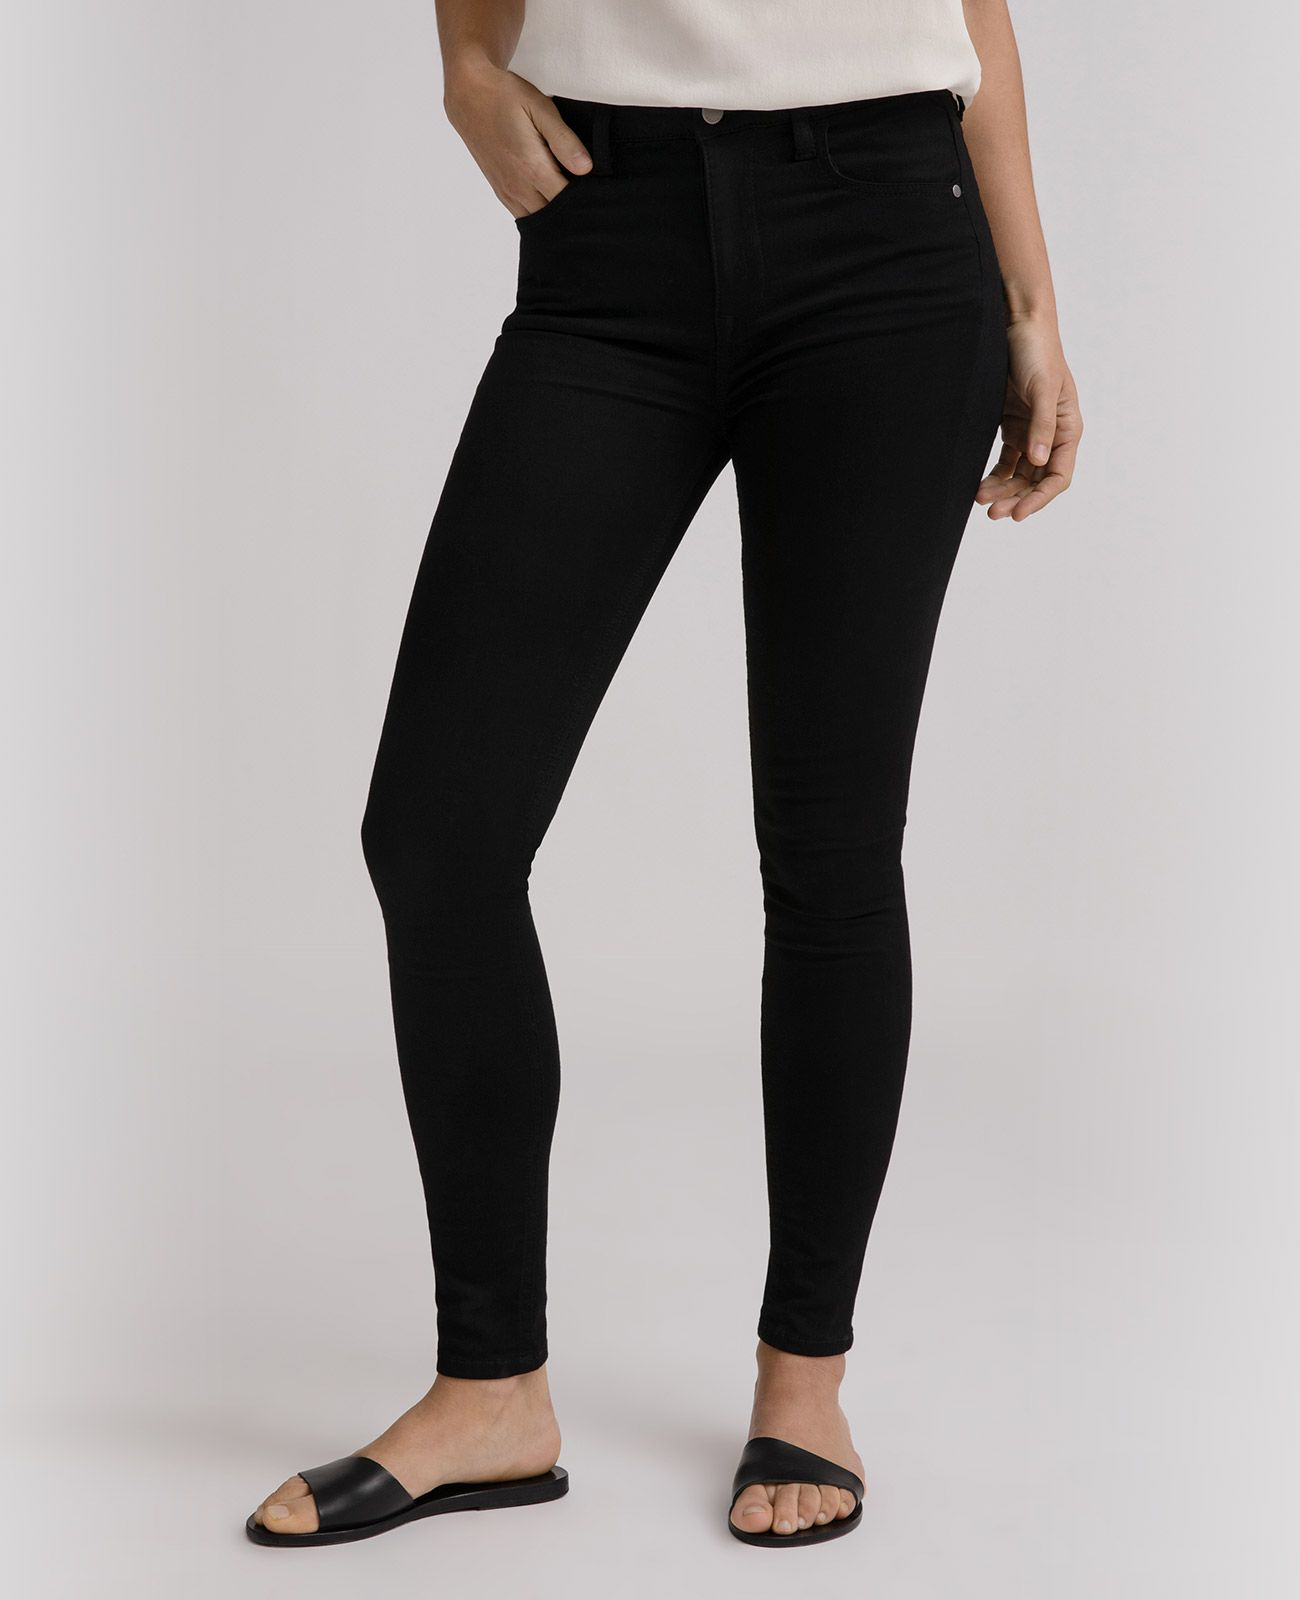 Women's Flex Denim Black Mid-Rise Skinny Jeans